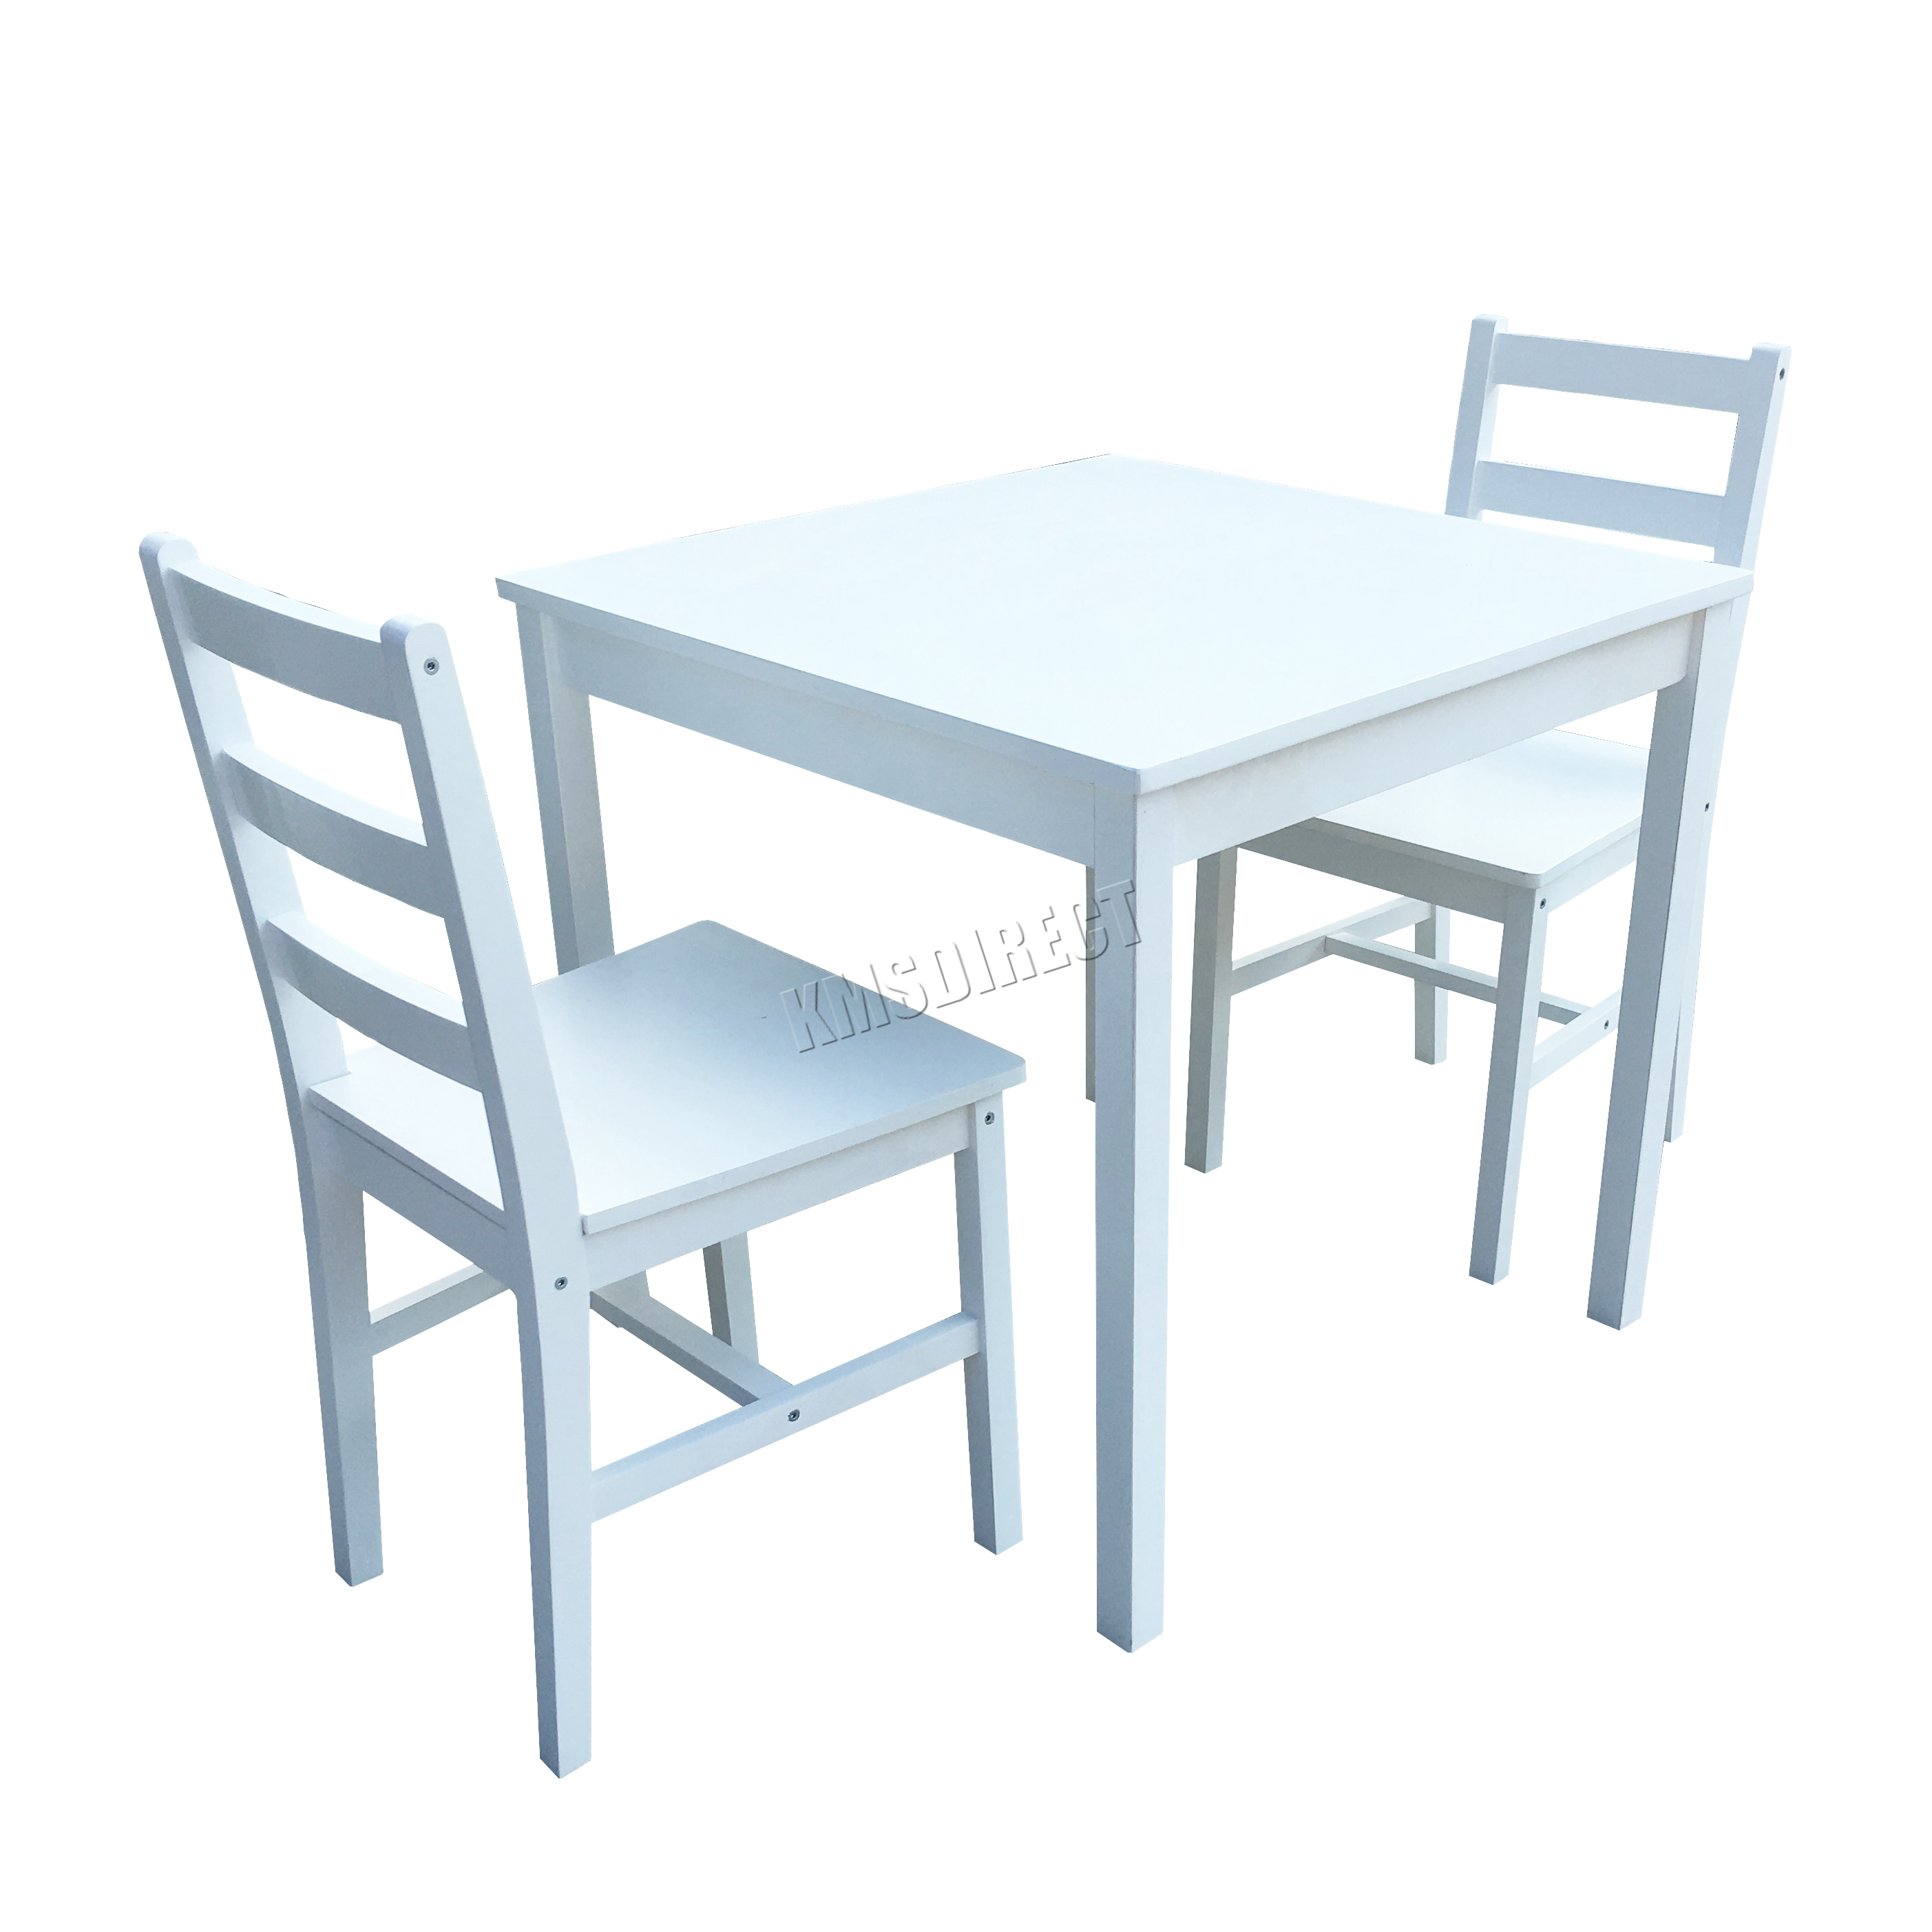 Westwood solid pine wood dining table with 2 chairs set kitchen home furniture ebay - Ebay kitchen table sets ...